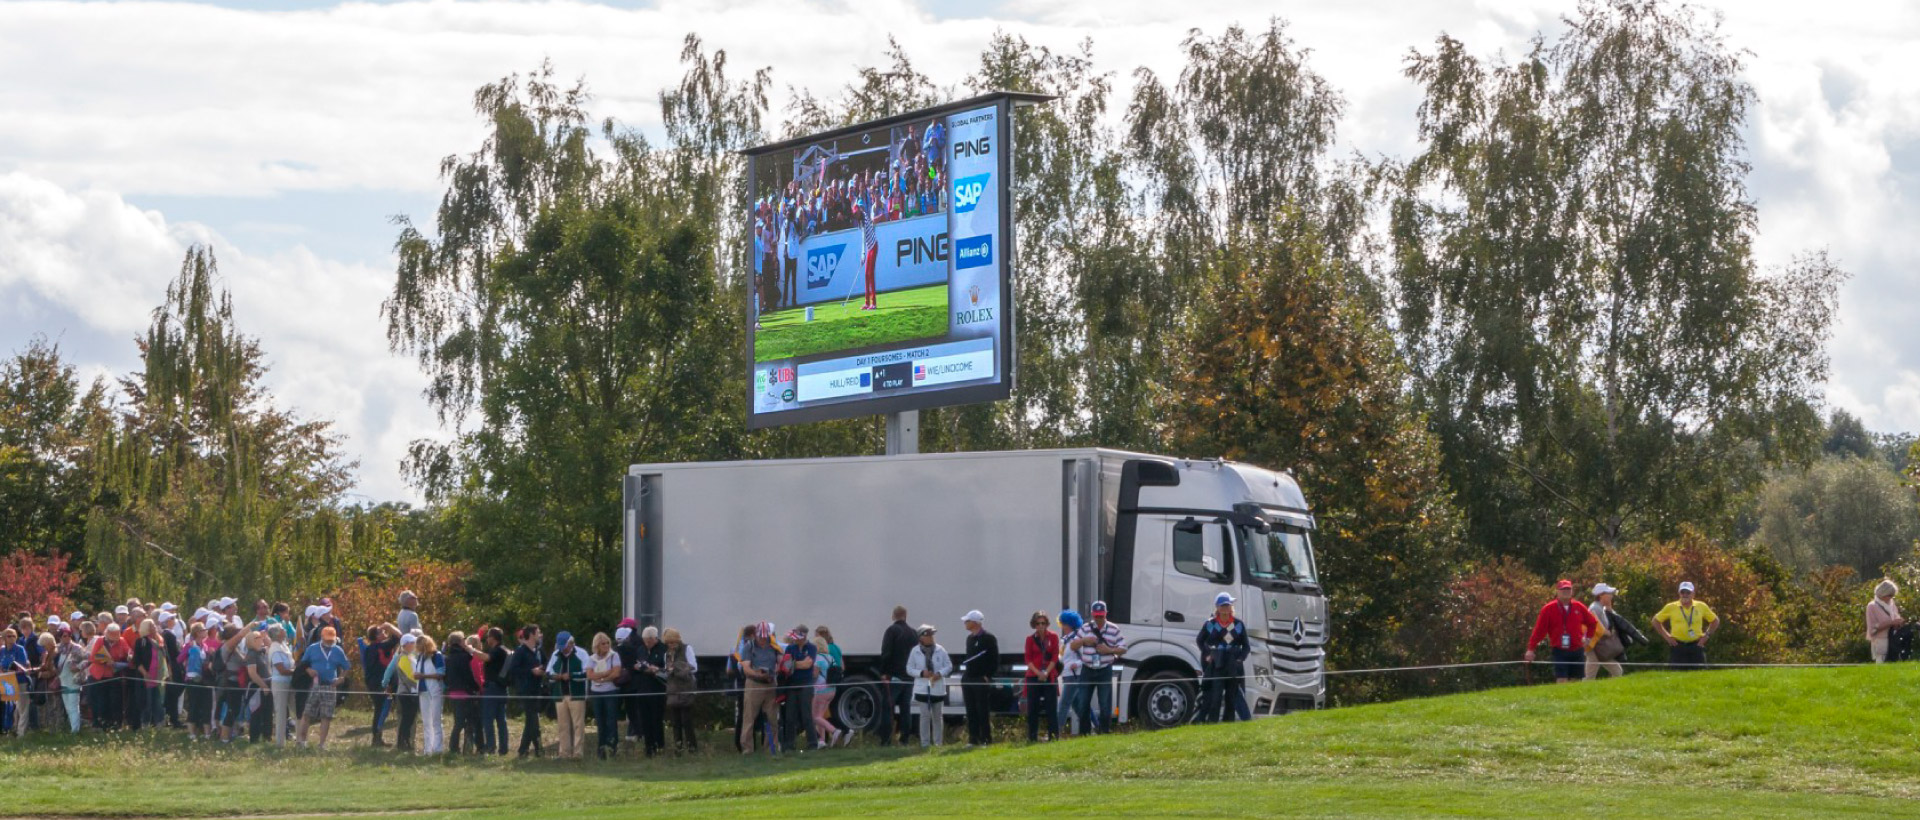 LED-Truck/Trailer Golf Sankt Leon-Rot 2015